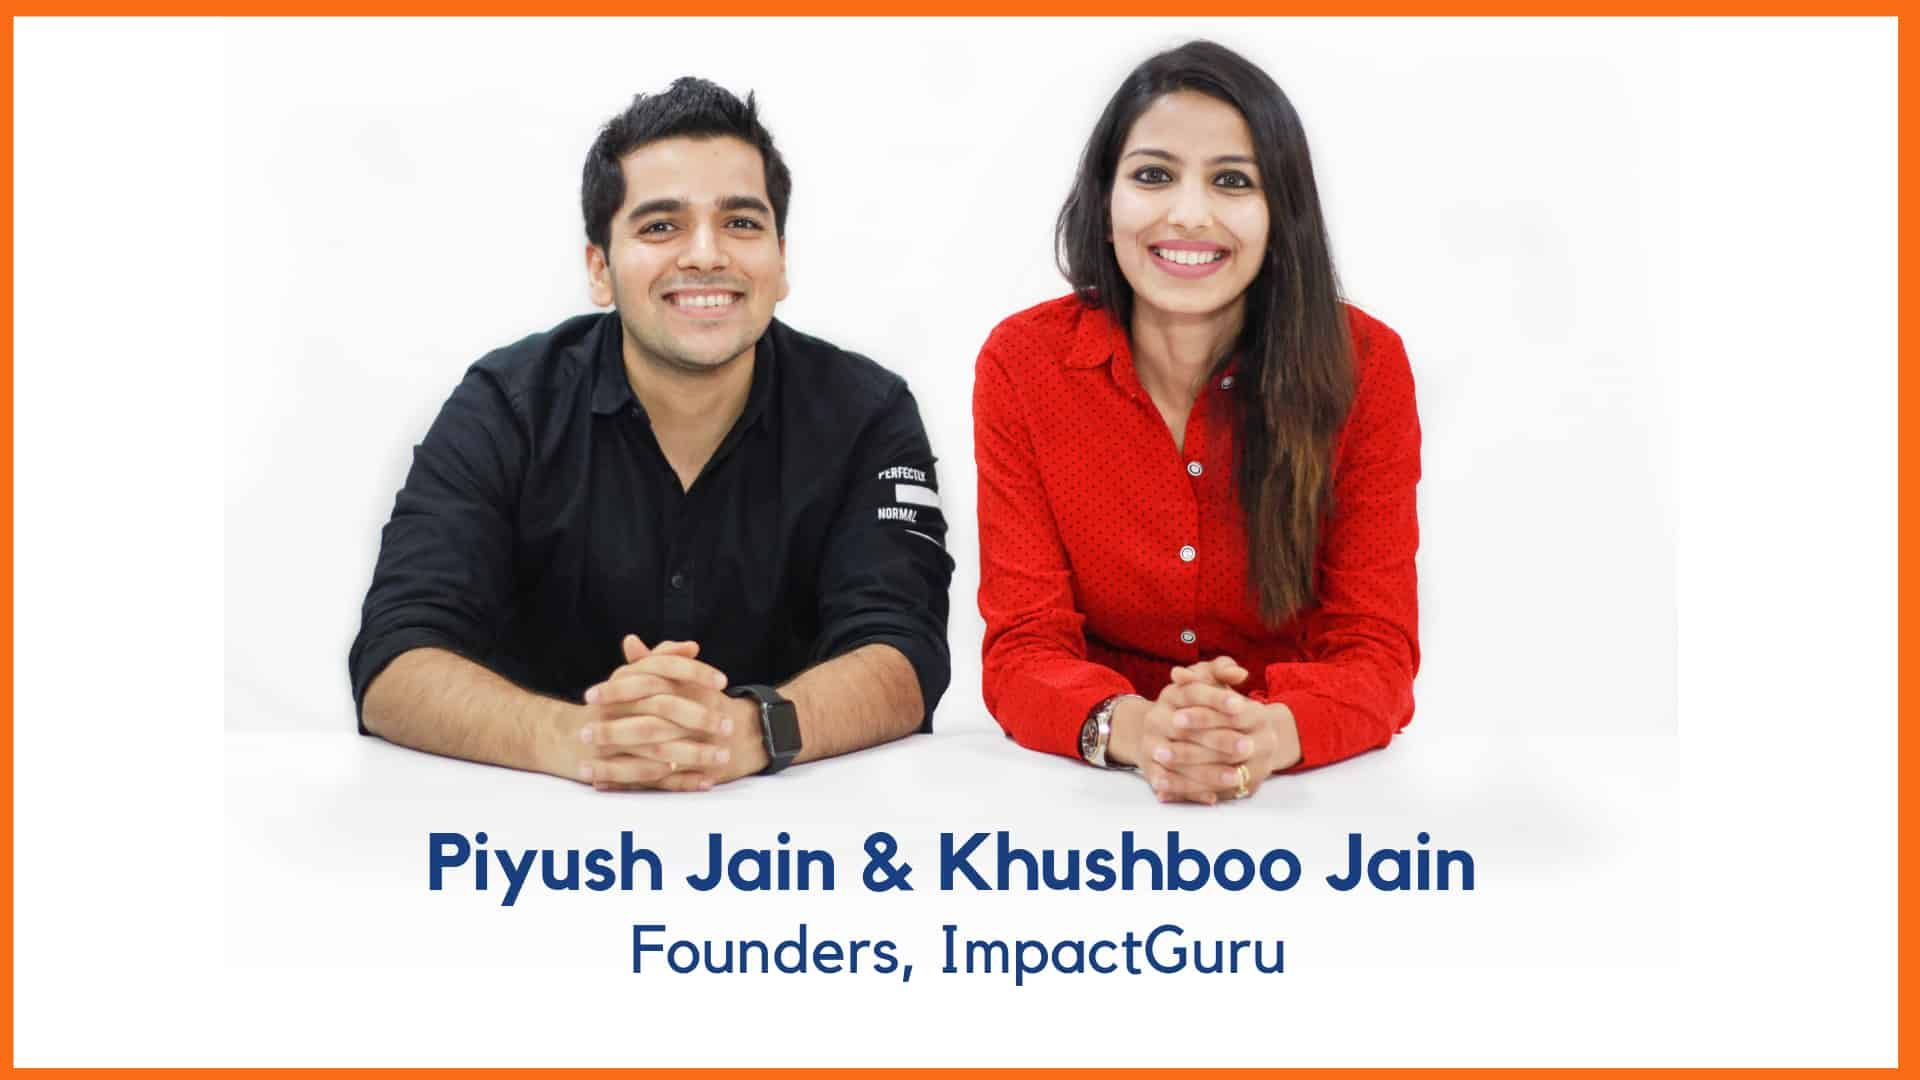 ImpactGuru - Making Healthcare accessible with Crowdfunding